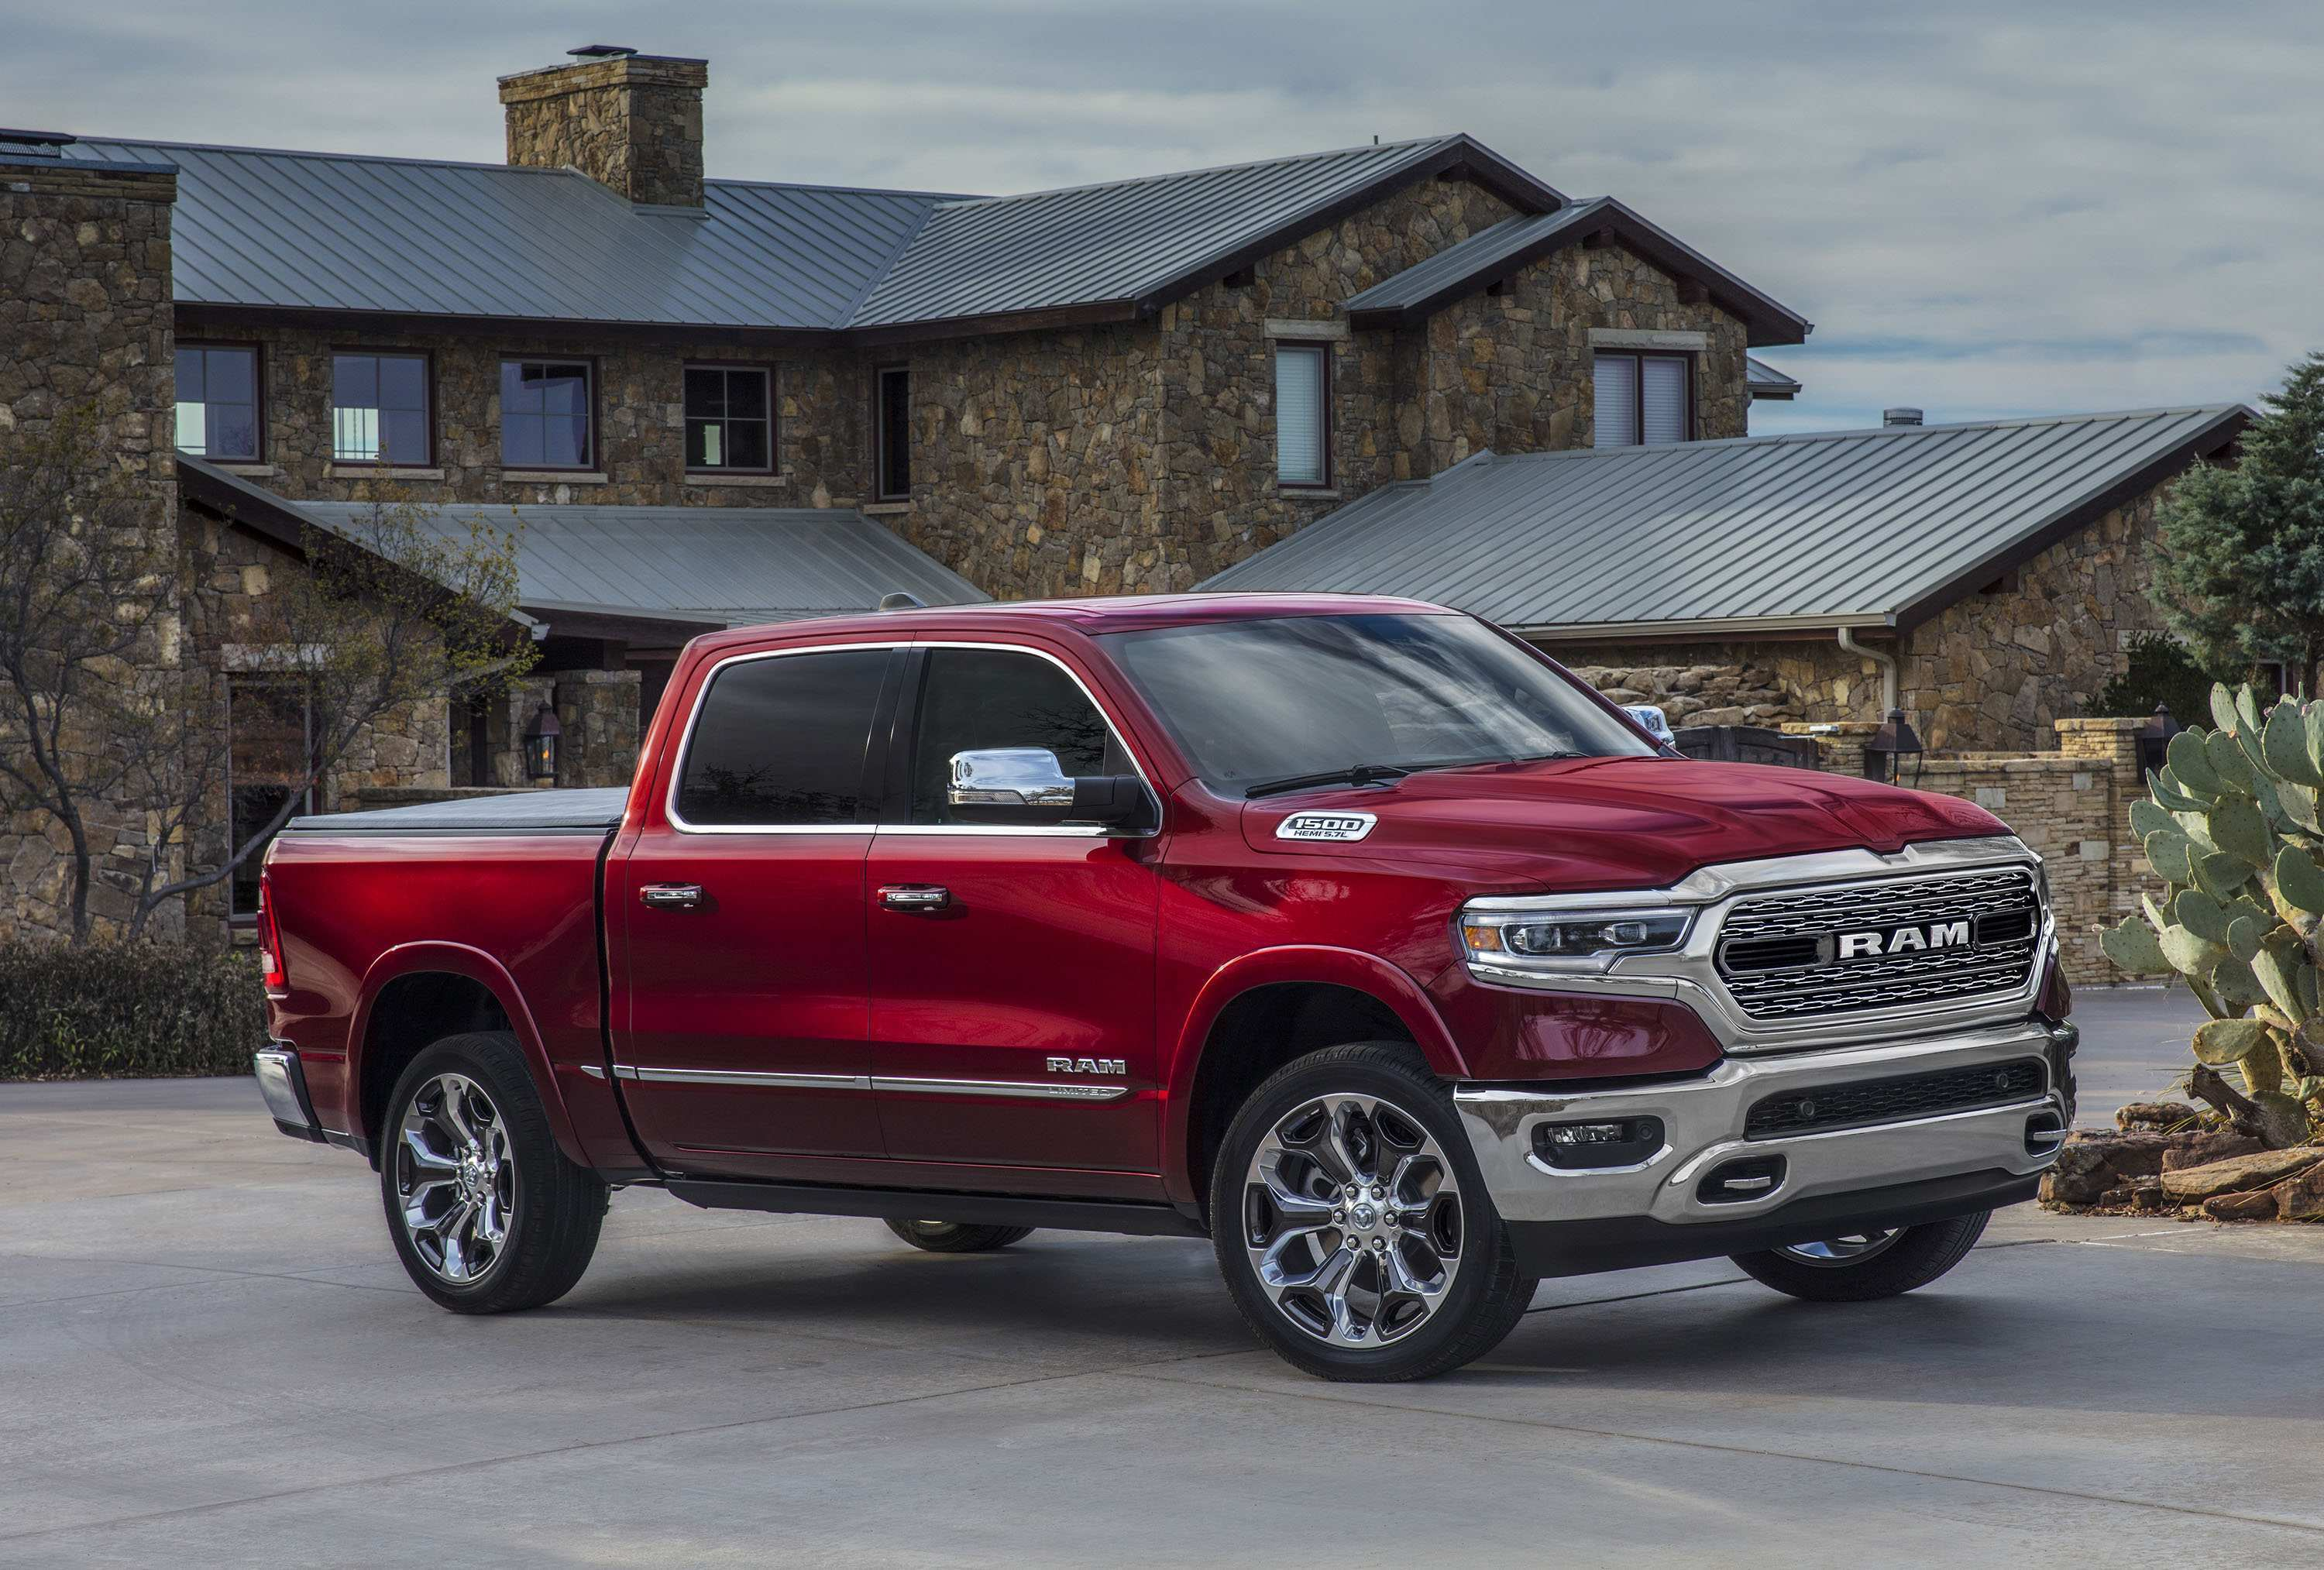 68 The 2020 Dodge Ram Pickup Research New for 2020 Dodge Ram Pickup